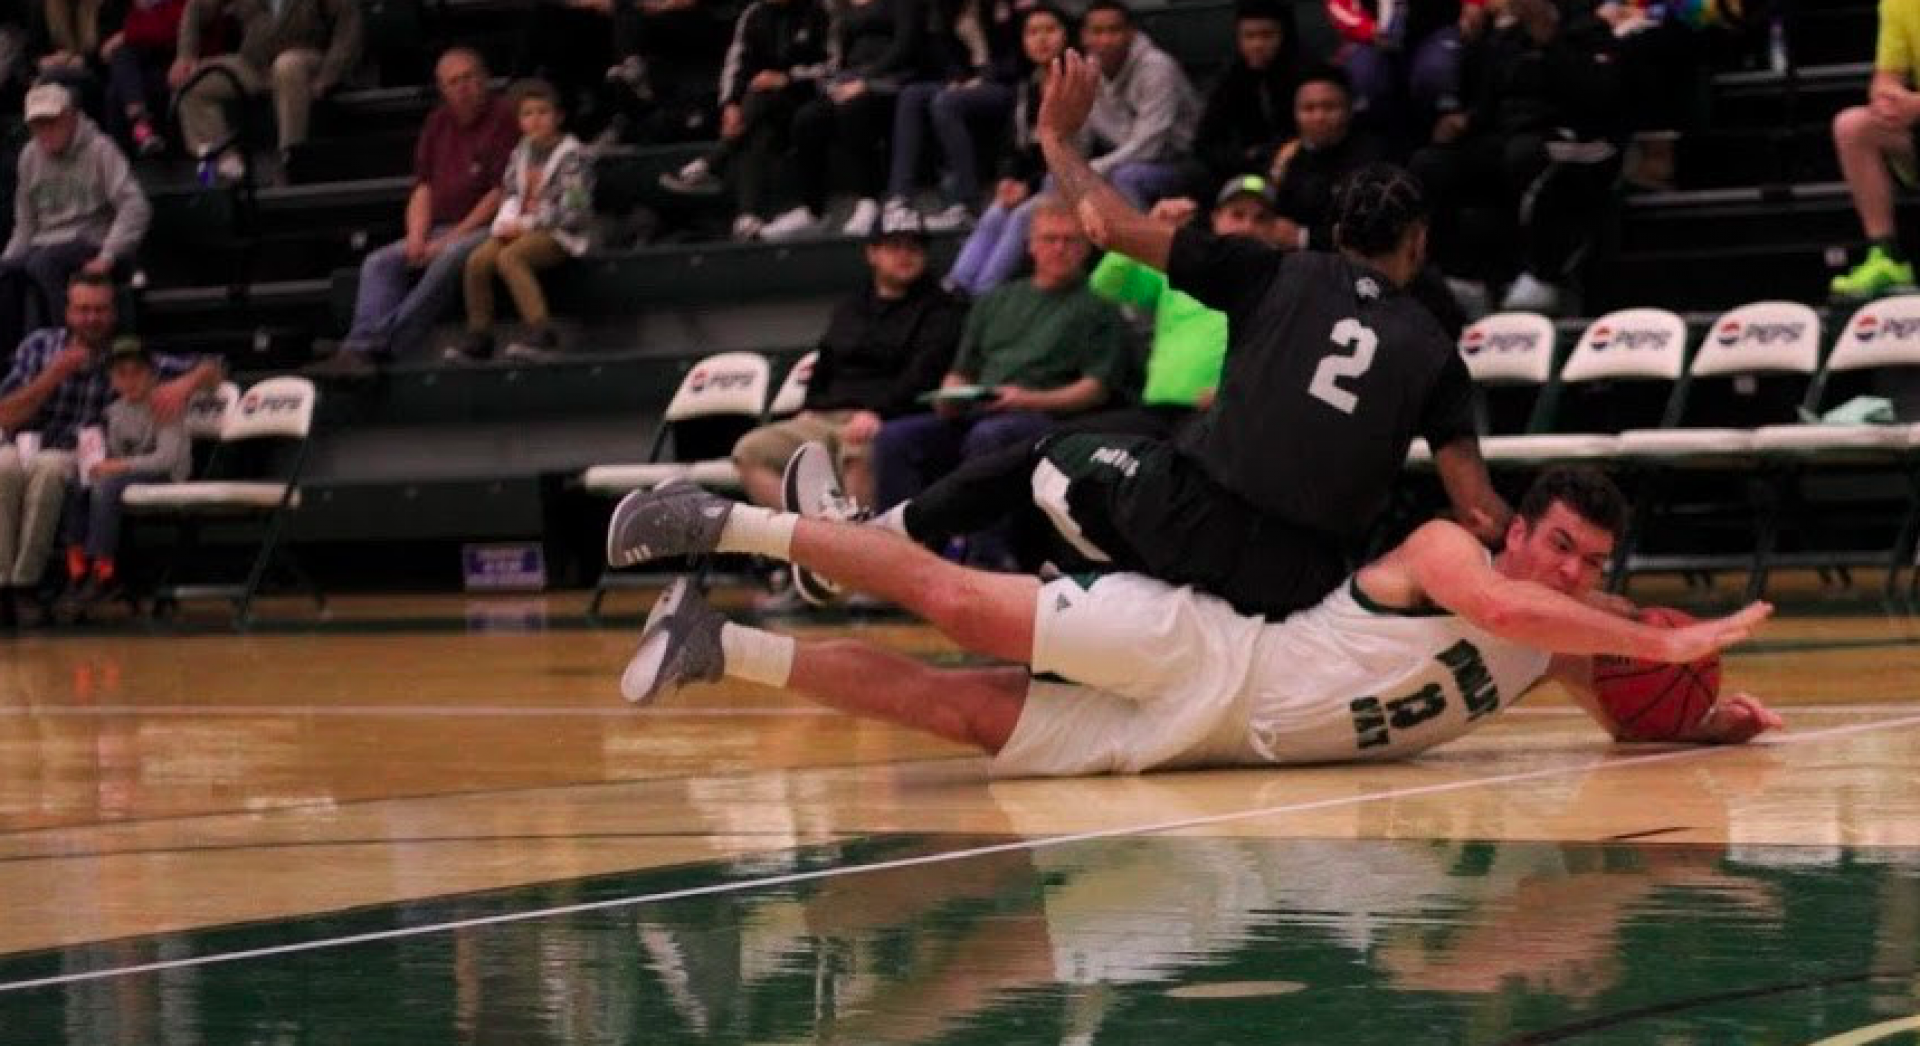 Jacks senior guard Will Taylor dives for the loose ball. The Jacks are currently on a three-game skid. Photo by Diego Linares.